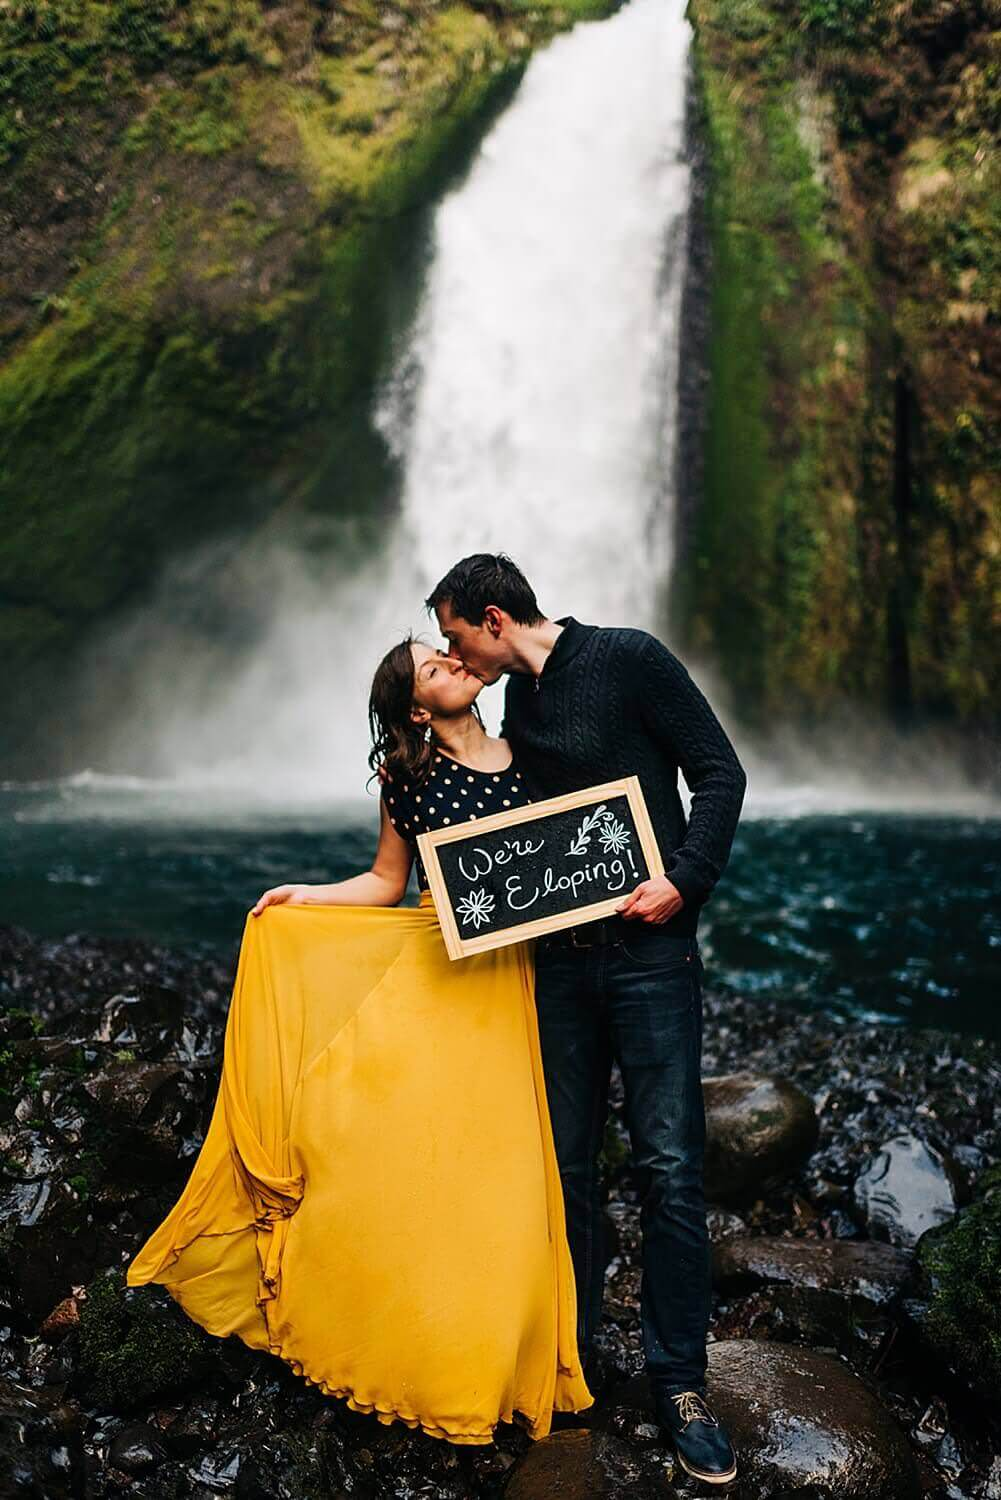 Oregon,Portland,Sam Starns,Wachlella Falls,adventure session,engagement session,waterfall engagement session,